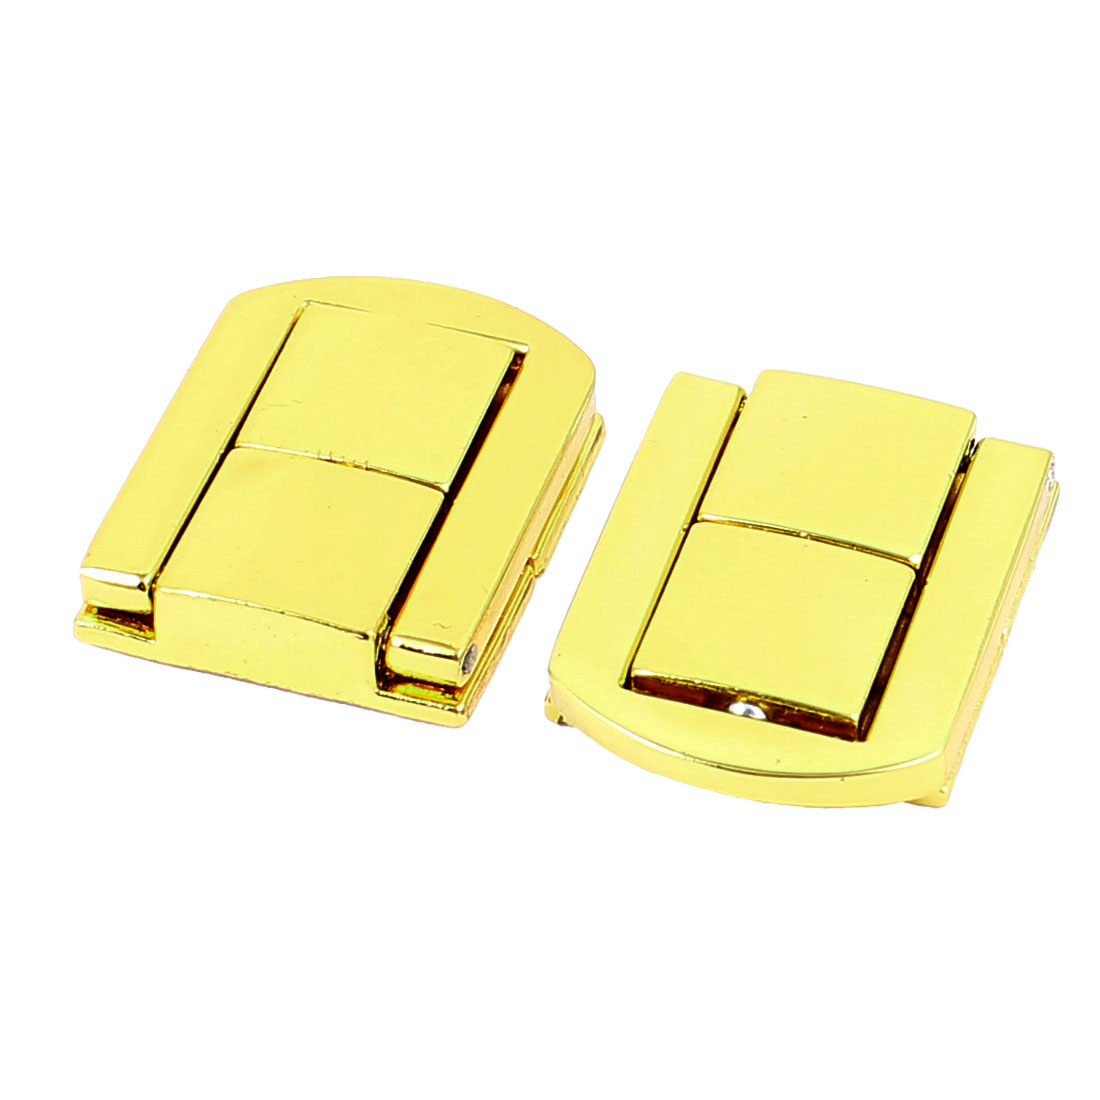 Unique Bargains Jewelry Boxes Latch Gift Case Latches Small Box Hardware Gold Tone 2PCS